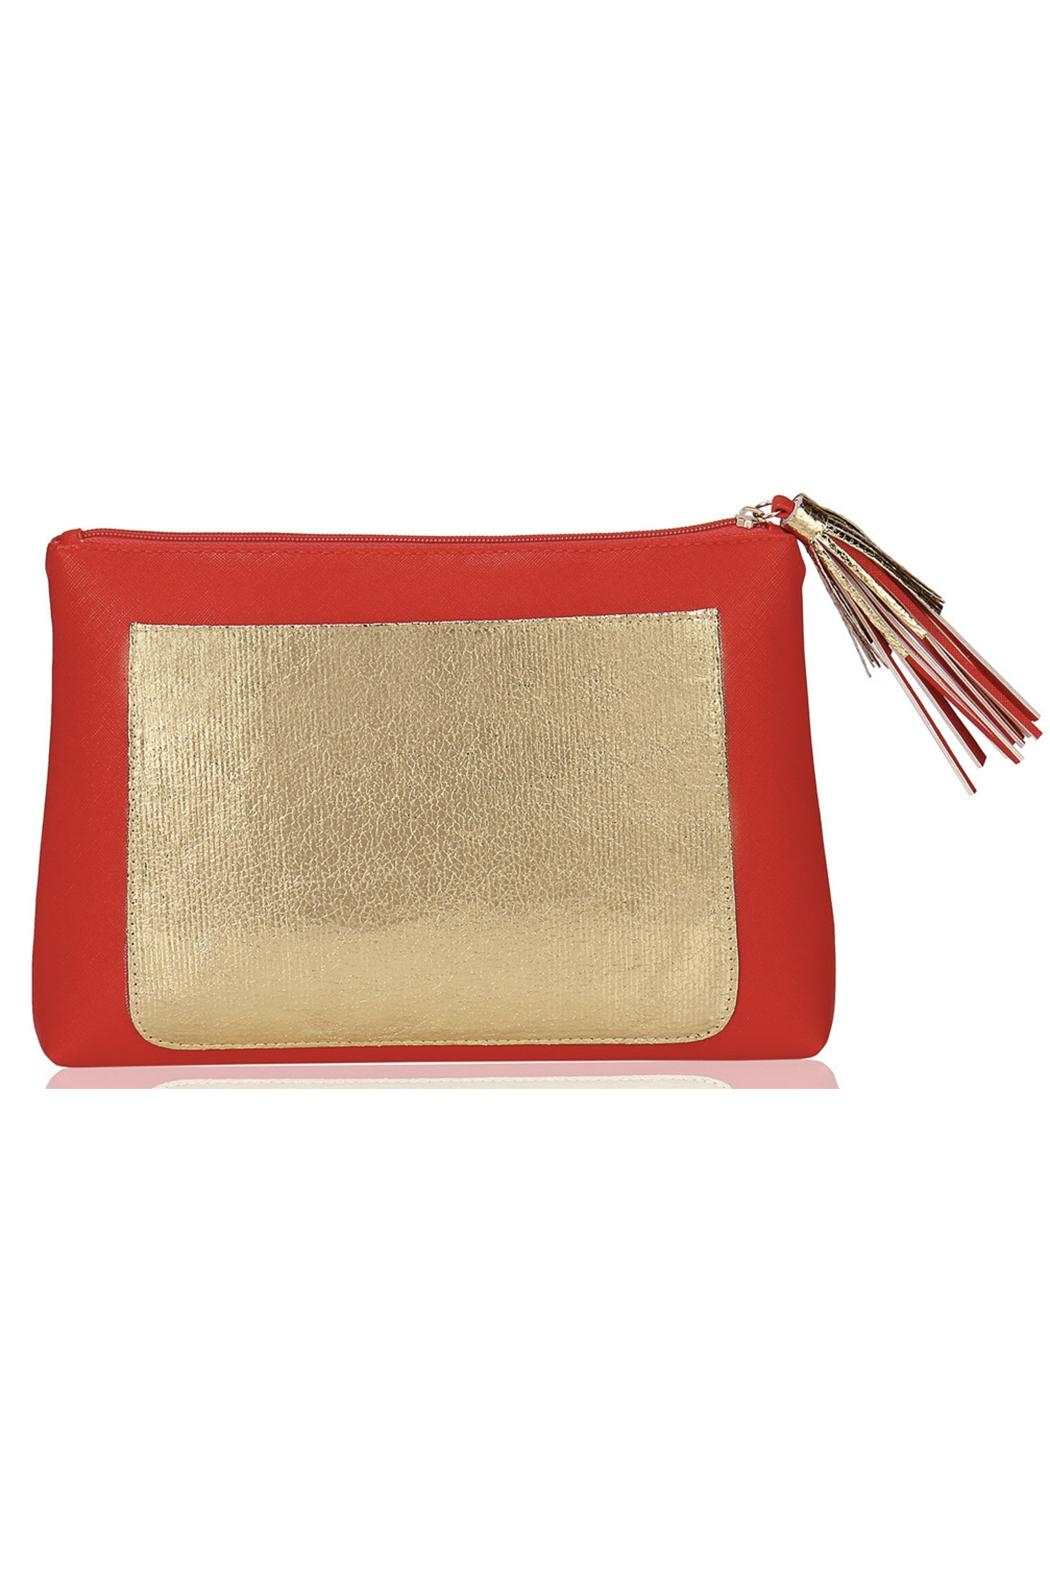 Emma Lomax Paint-Town-Red Clutch - Front Full Image